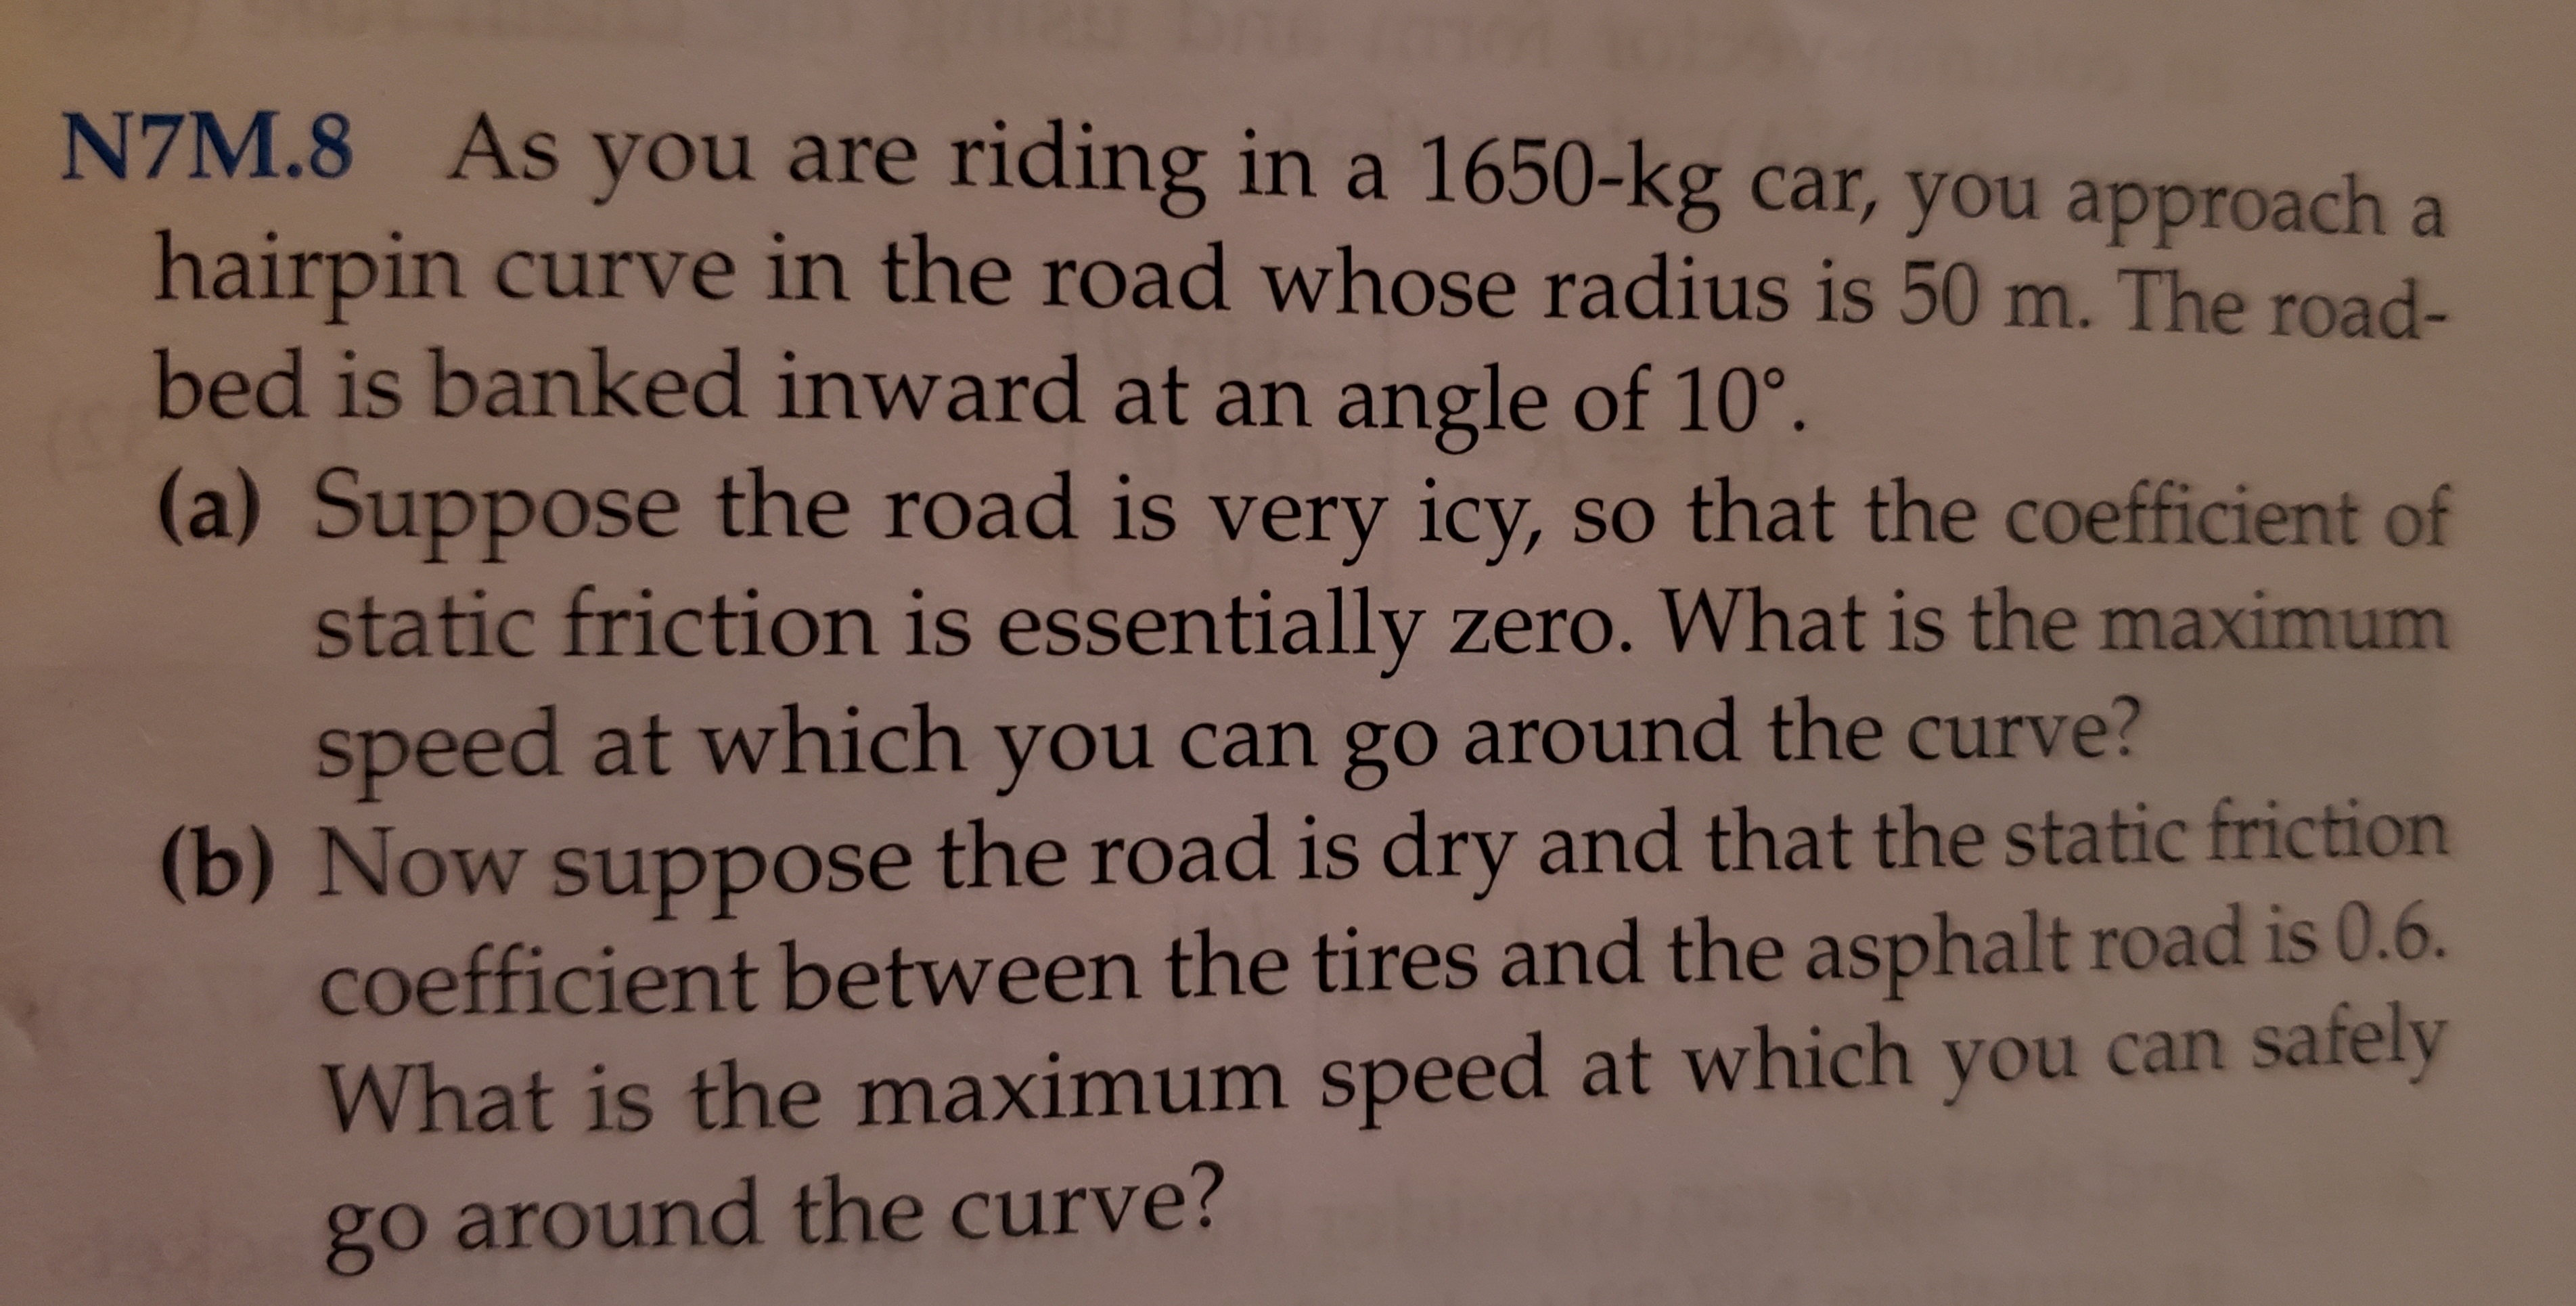 As you are riding in a 1650-kg car, you approach a N7M.8 hairpin curve in the road whose radius is 50 m. The road- bed is banked inward at an angle of 10° (a) Suppose the road is very icy, so that the coefficient of static friction is essentially zero. What is the maximum speed at which you can go around the curve? (b) Now suppose the road is dry and that the static friction coefficient between the tires and the asphalt road is 0.6. What is the maximum speed at which you can safely go around the curve?